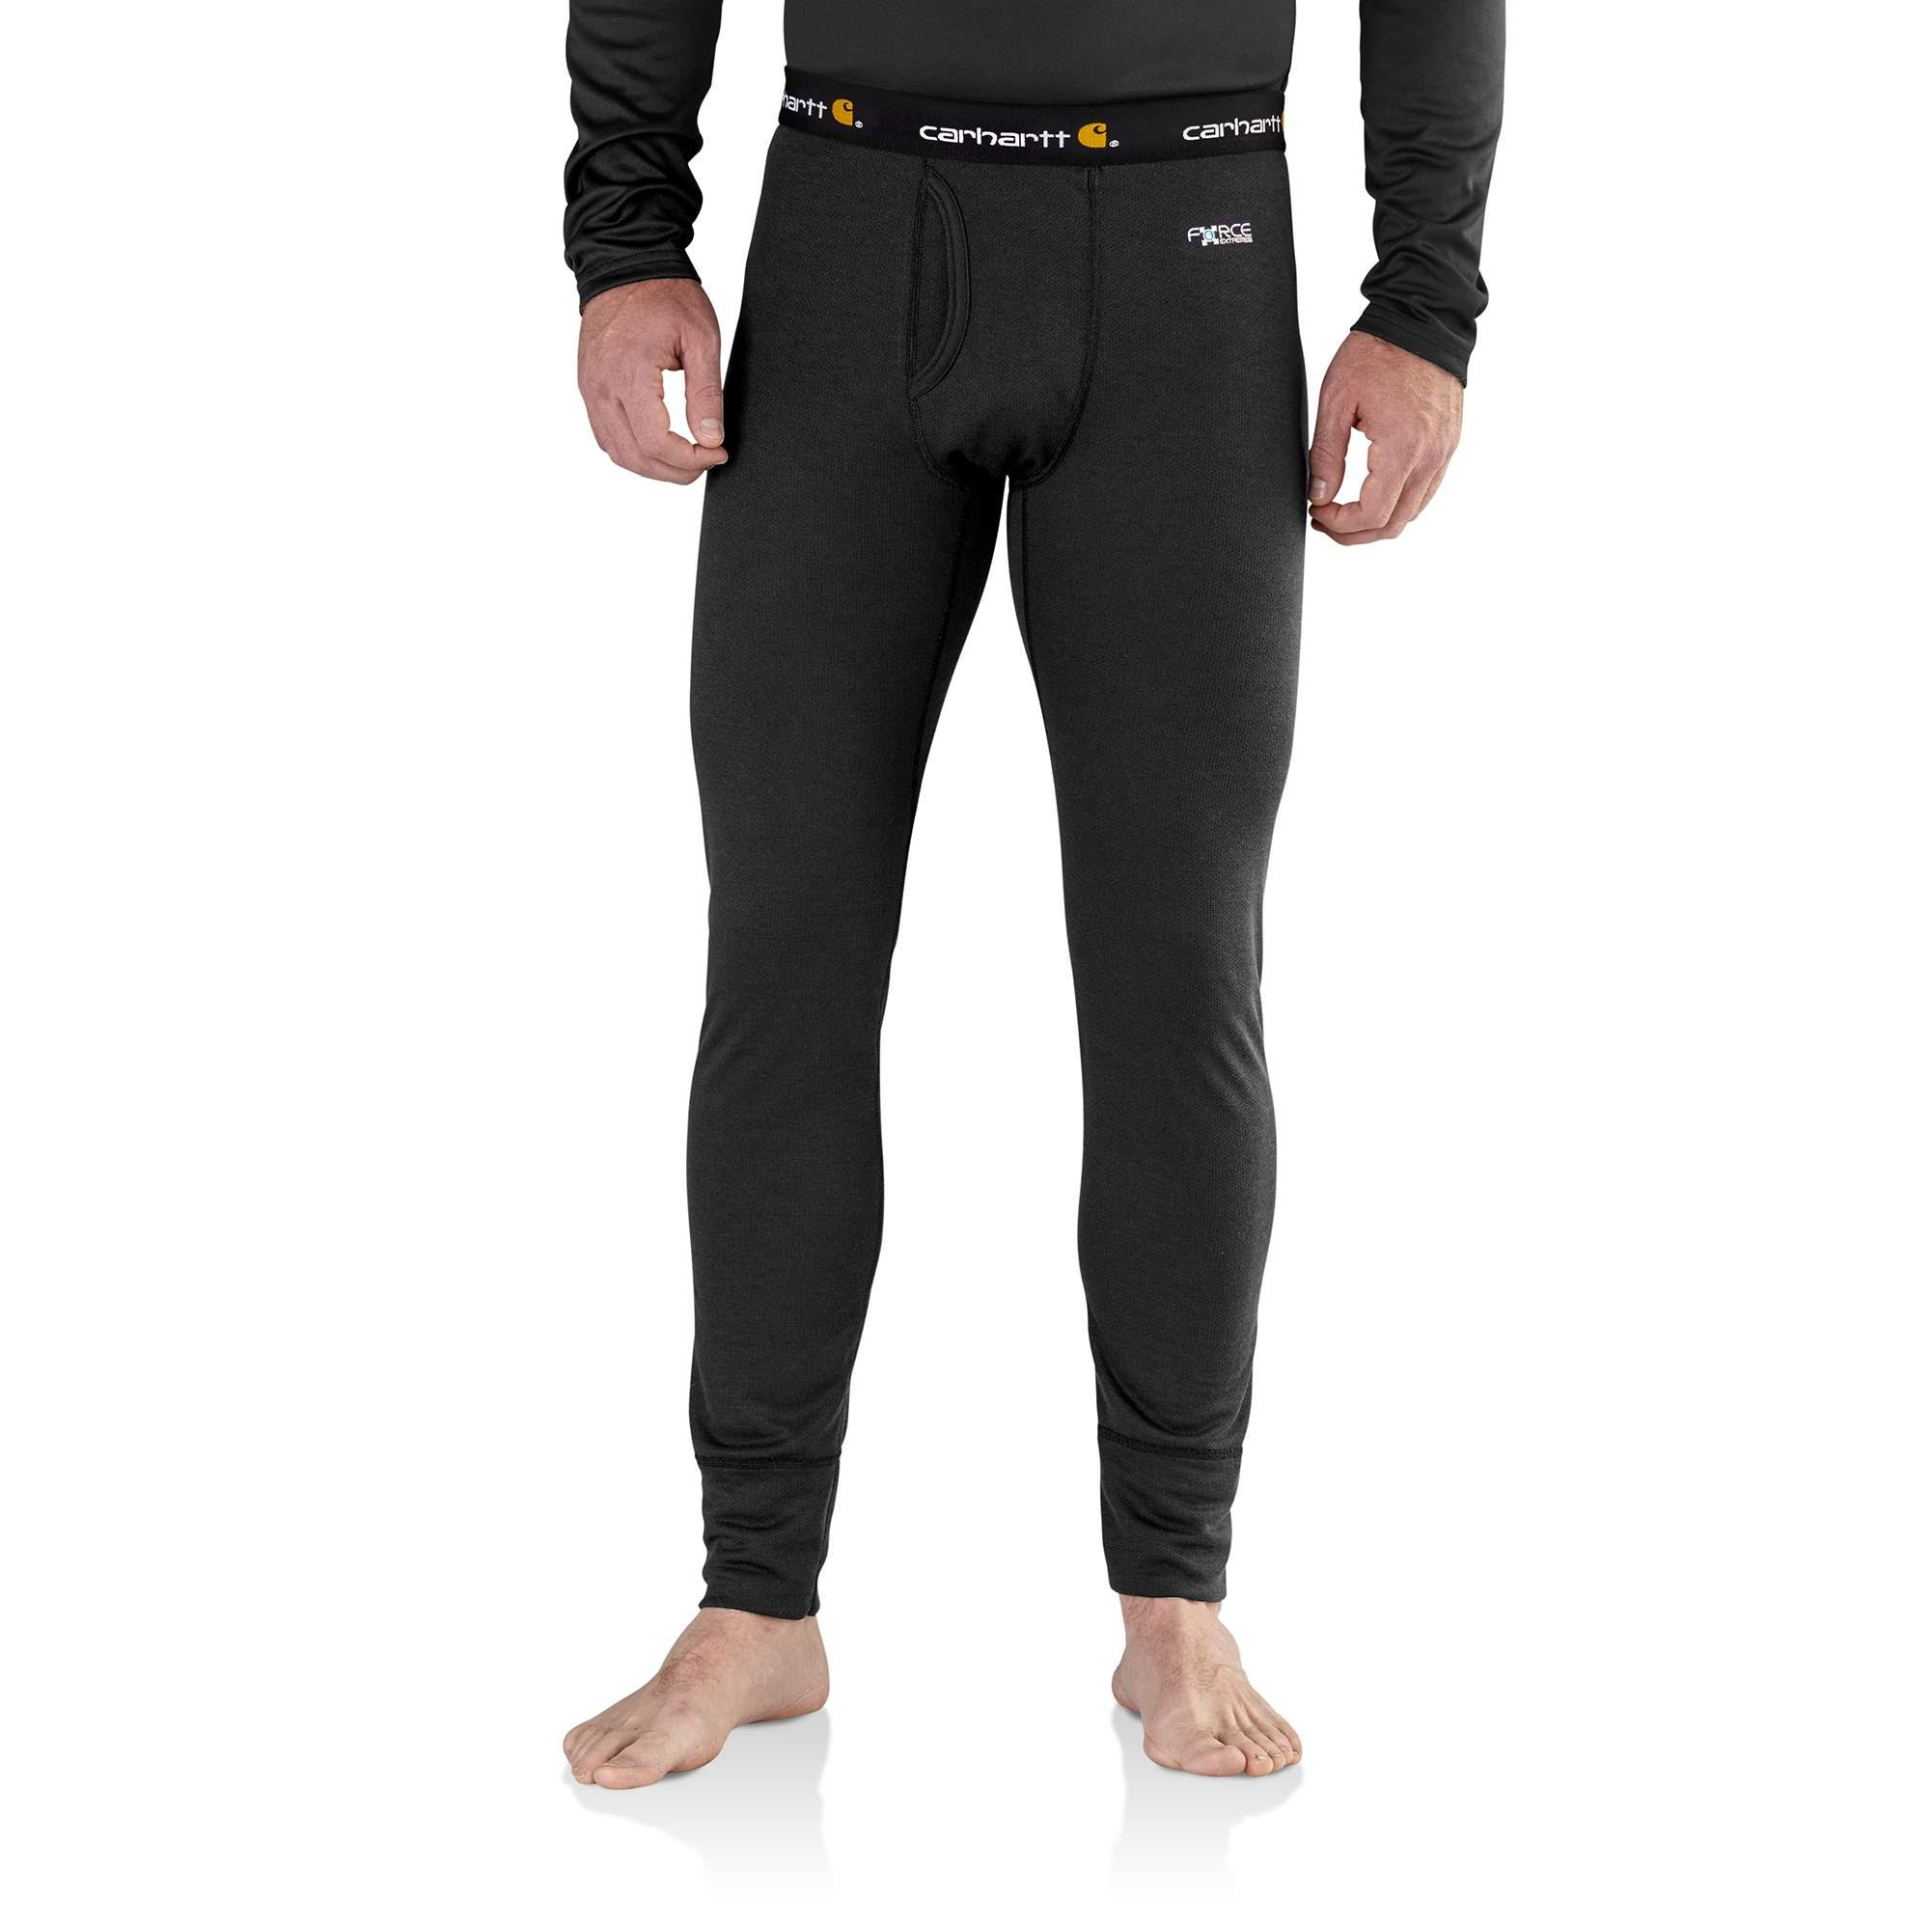 Carhartt Men's Base Force Extremes Cold Weather Bottom - Black, XL